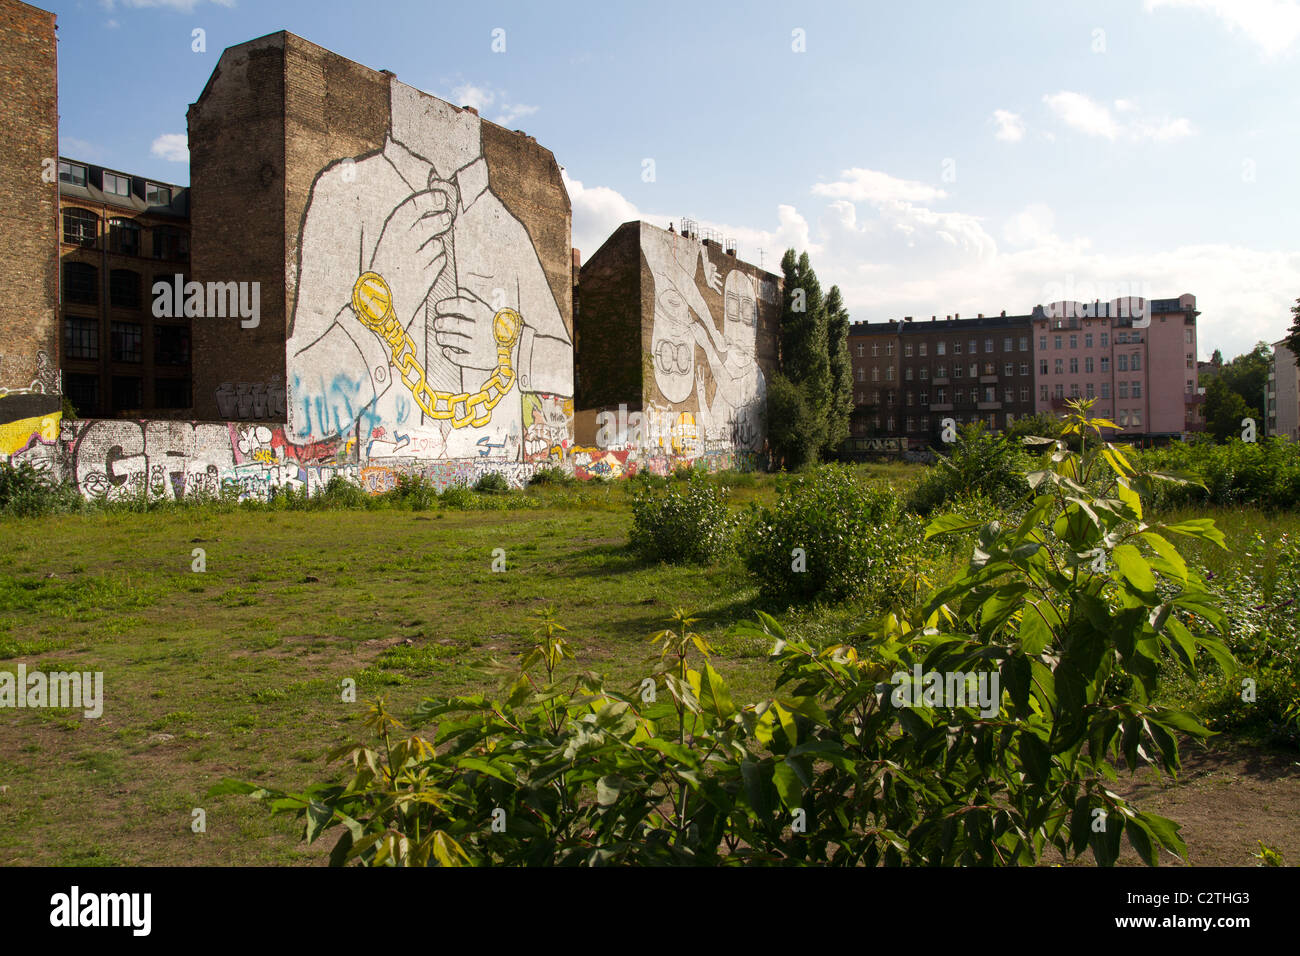 Giant streetart mural by artist Blu in Kreuzberg Berlin - Stock Image